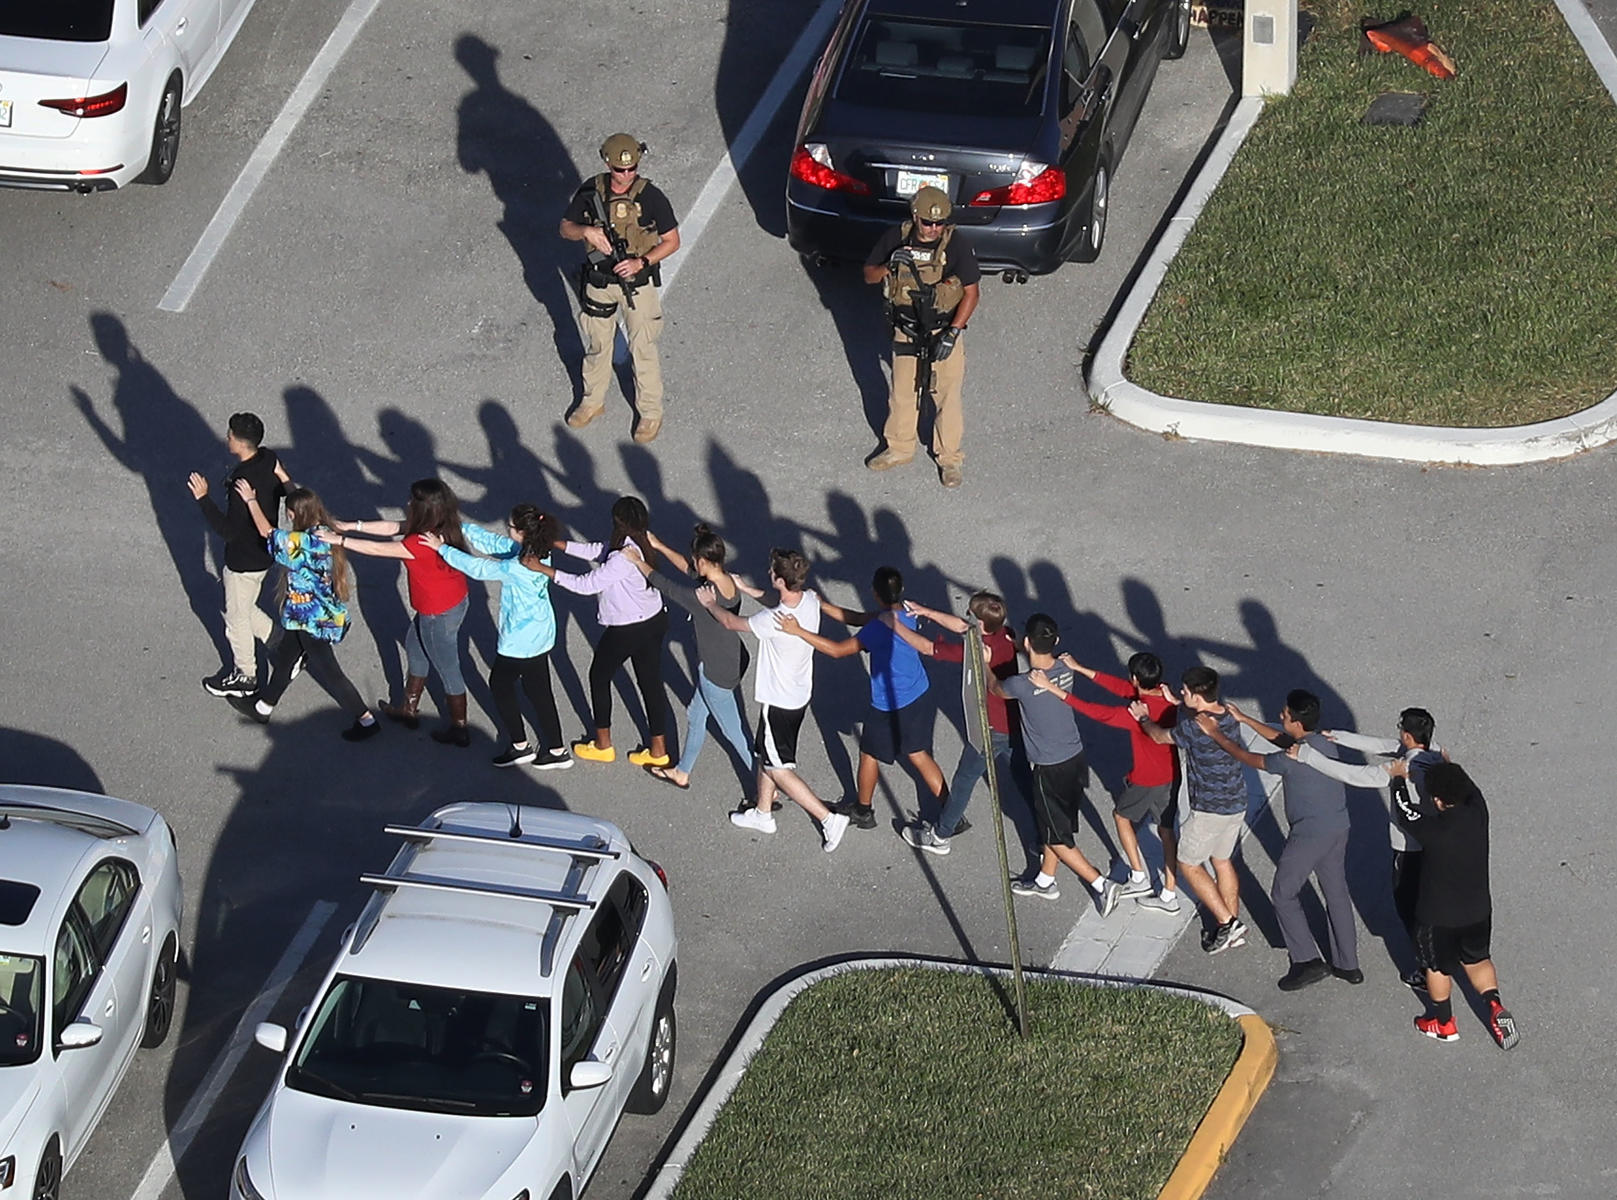 There Have Already Been 18 School Shootings in 2018 and It's Only February